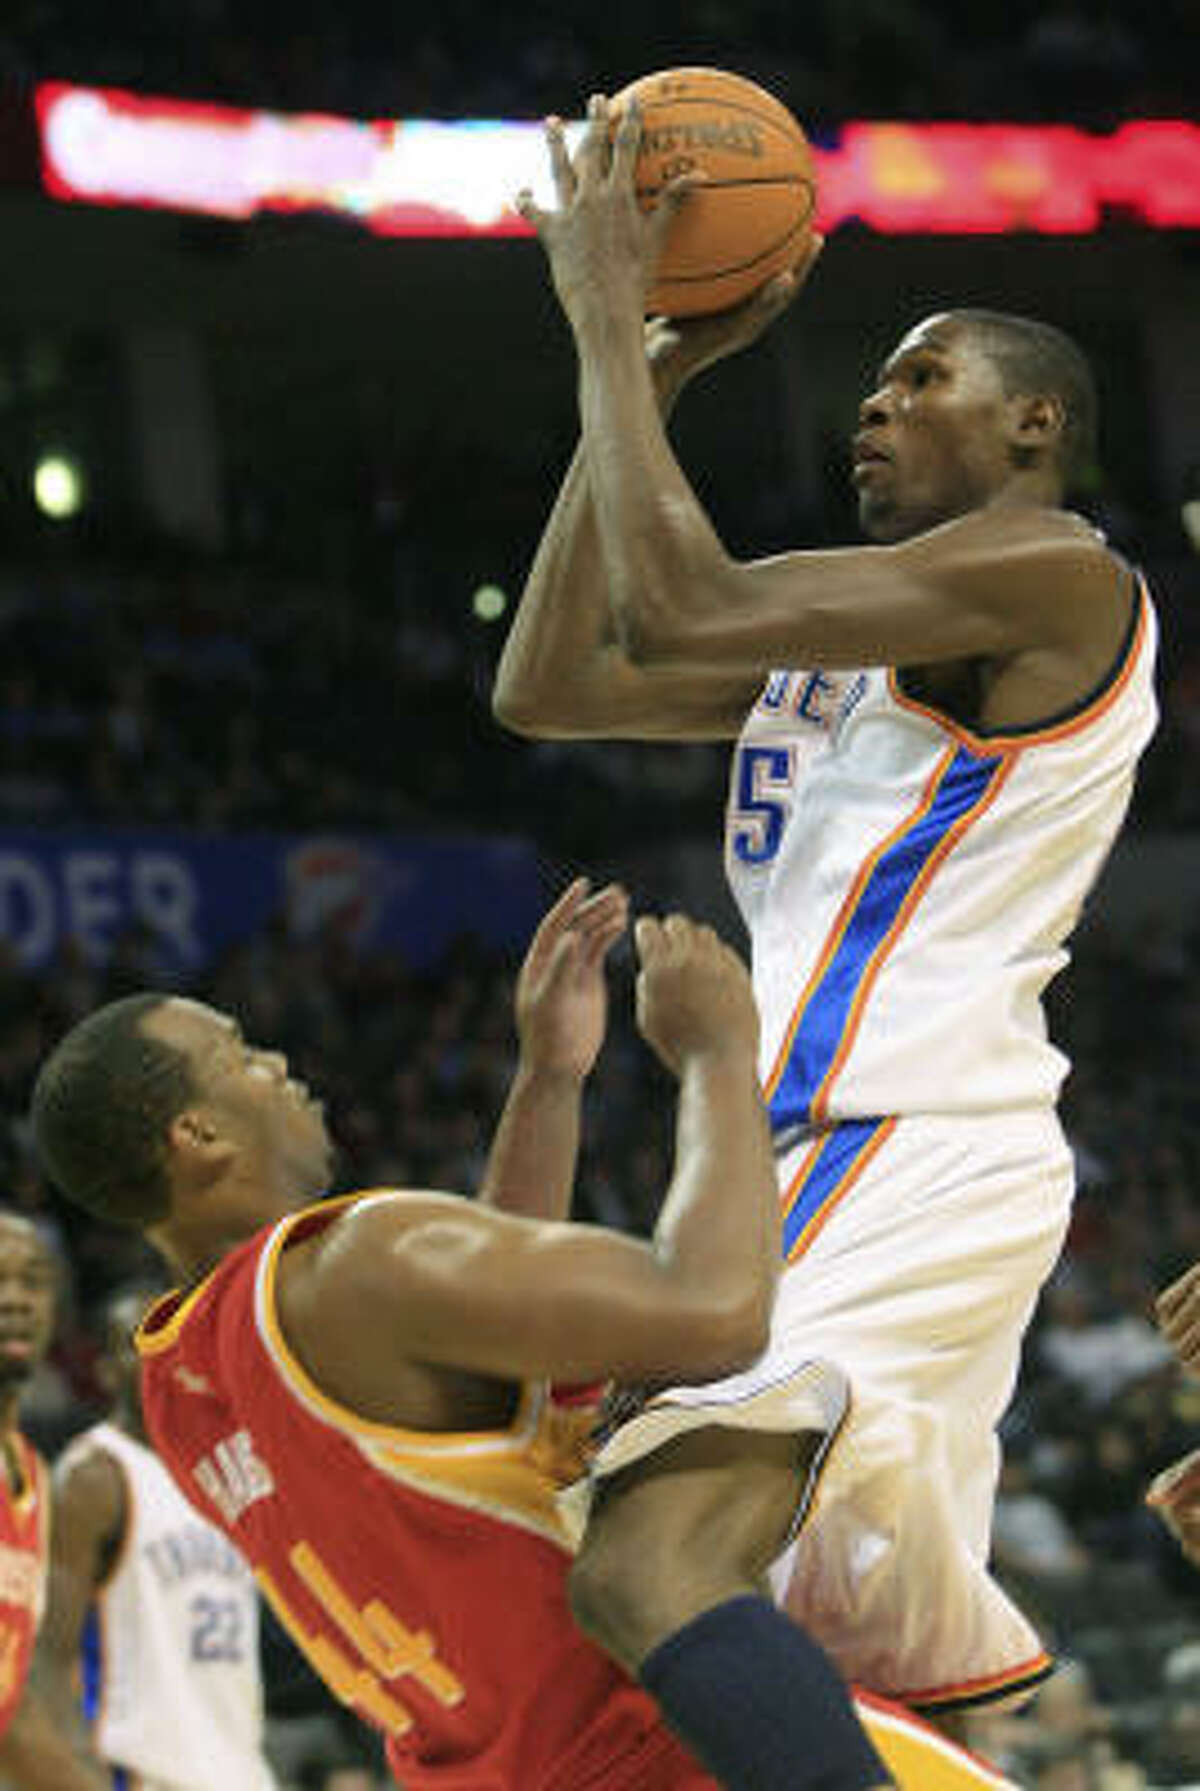 Thunder forward Kevin Durant, right, chargers into Rockets center Chuck Hayes as he goes up for a shot in the third quarter. Durant, who was called for an offensive foul on the play, finished with 25 points.